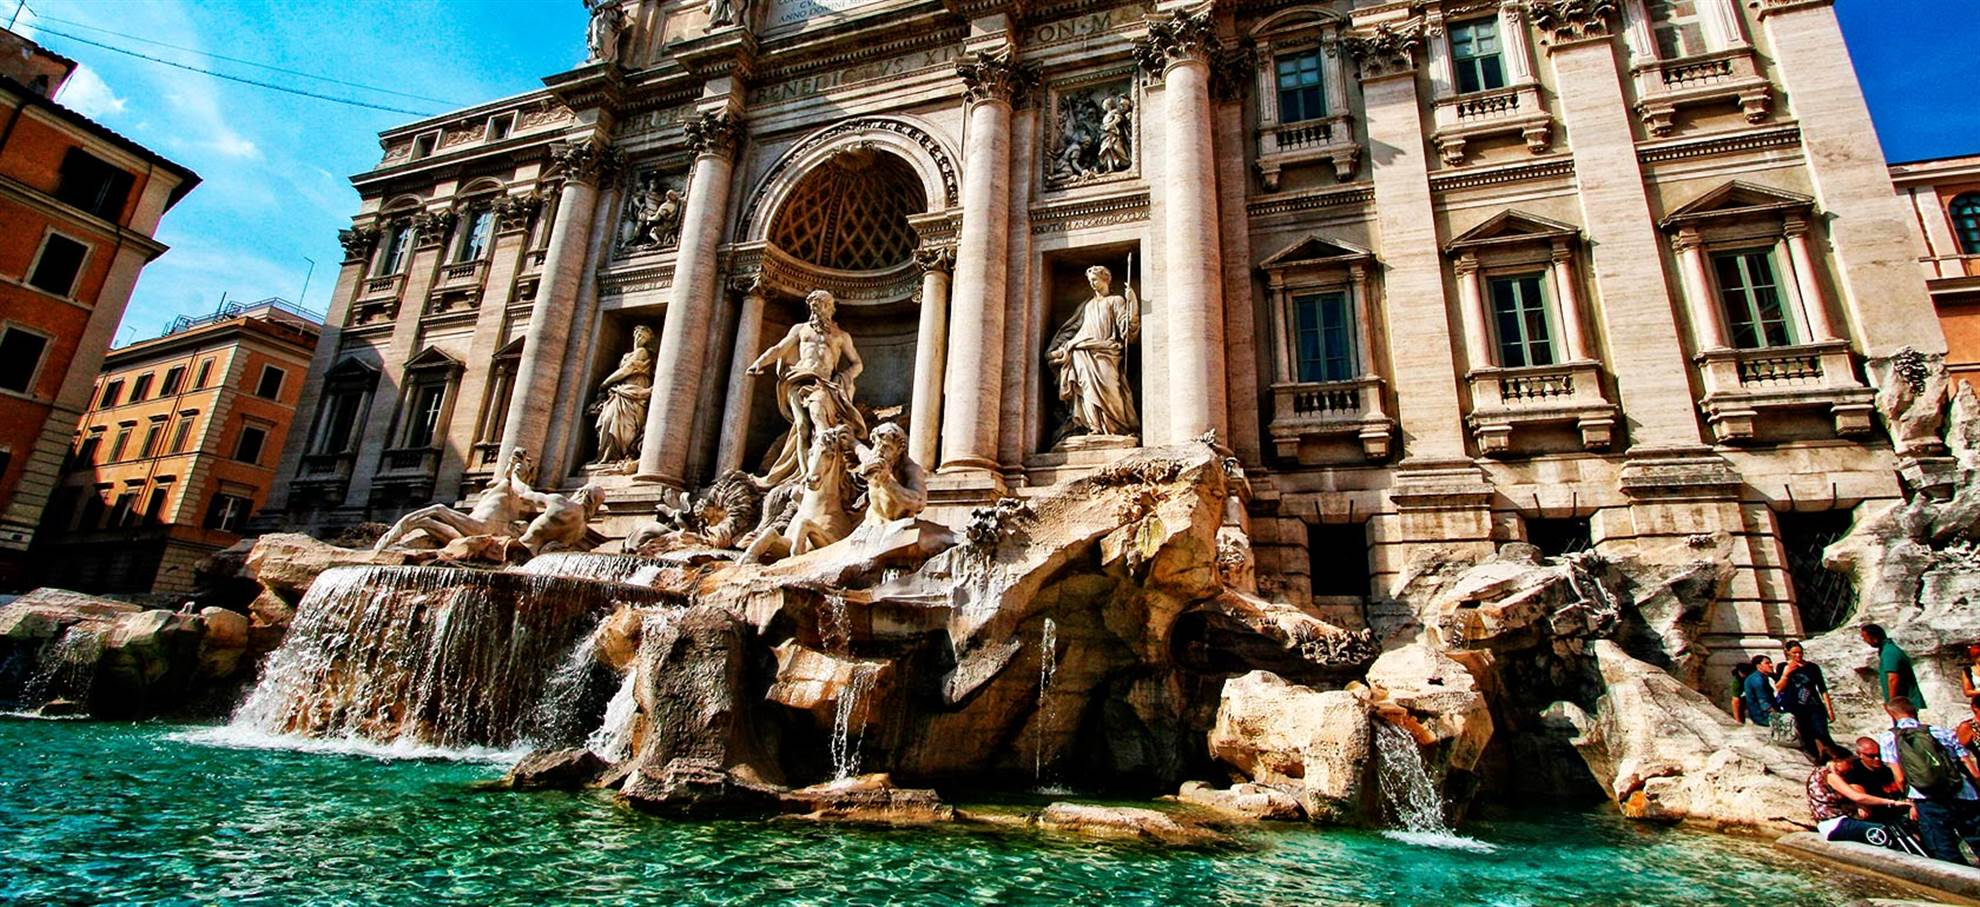 Pantheon, Trevi Fountain & Baroque Rome